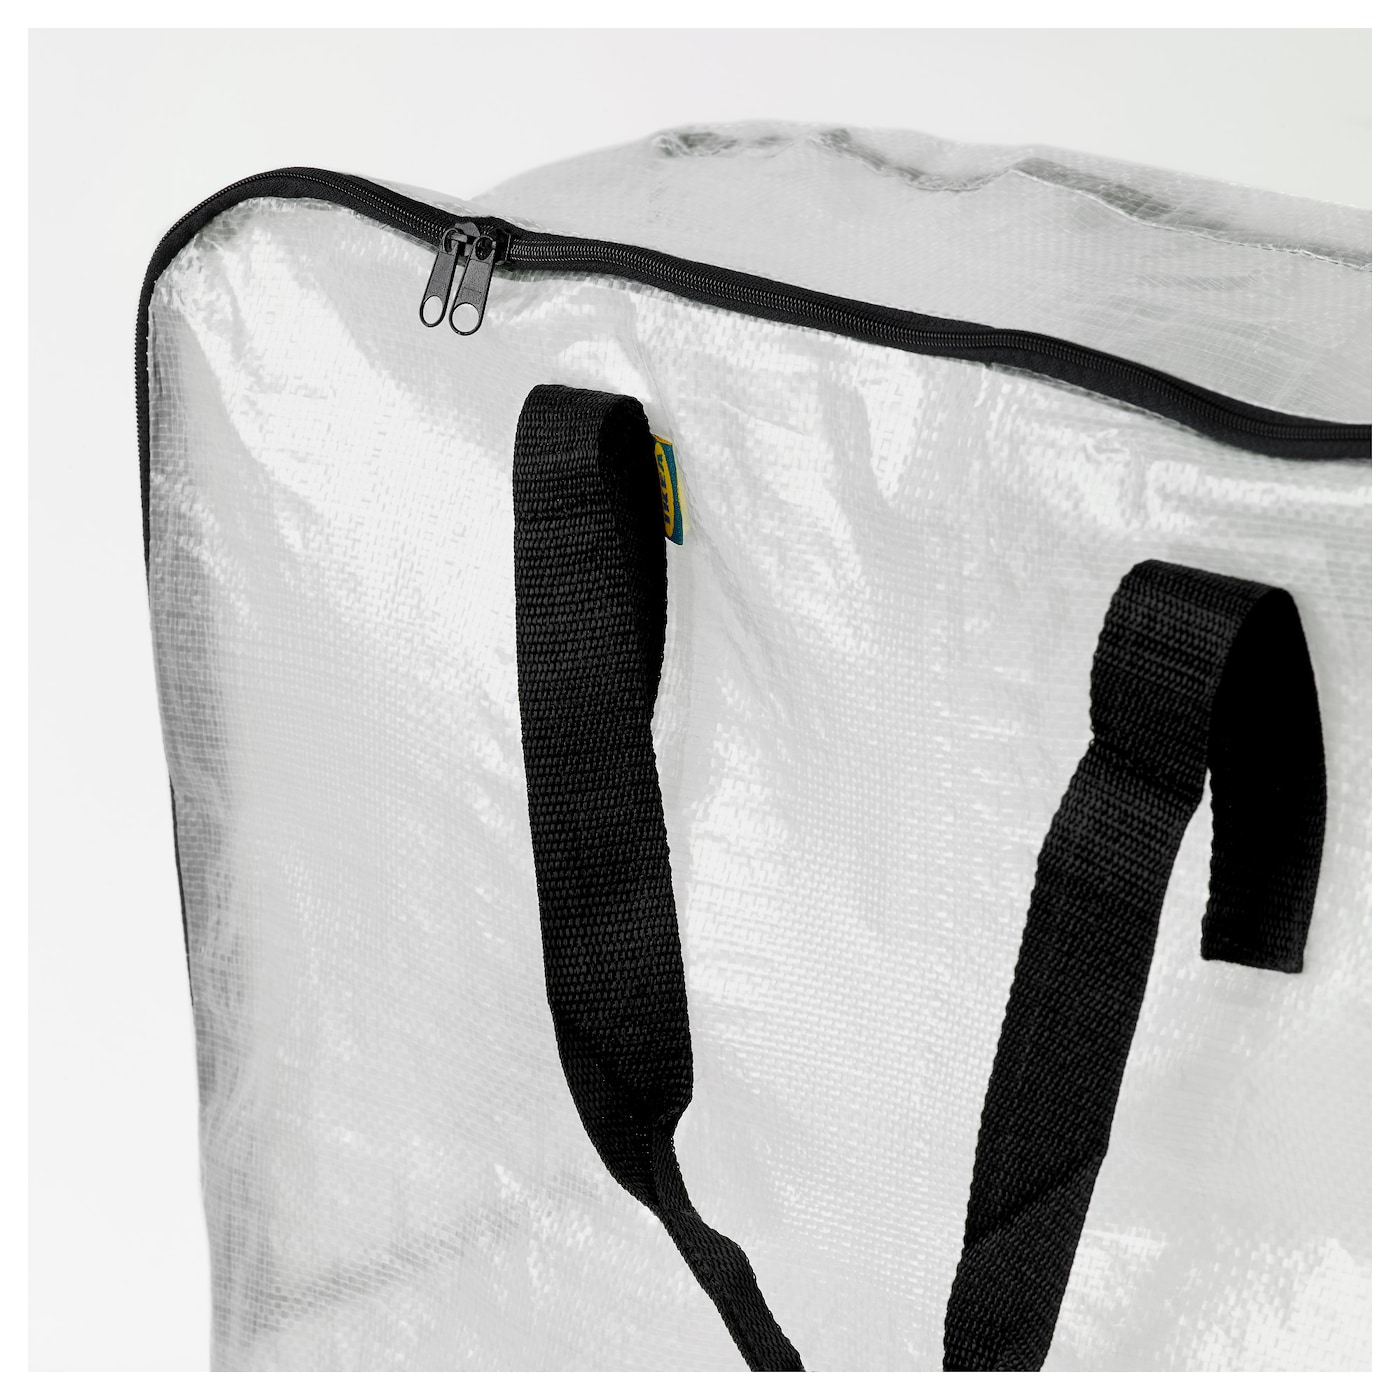 IKEA DIMPA storage bag Protects contents against moisture and dirt. Also suitable for waste sorting.